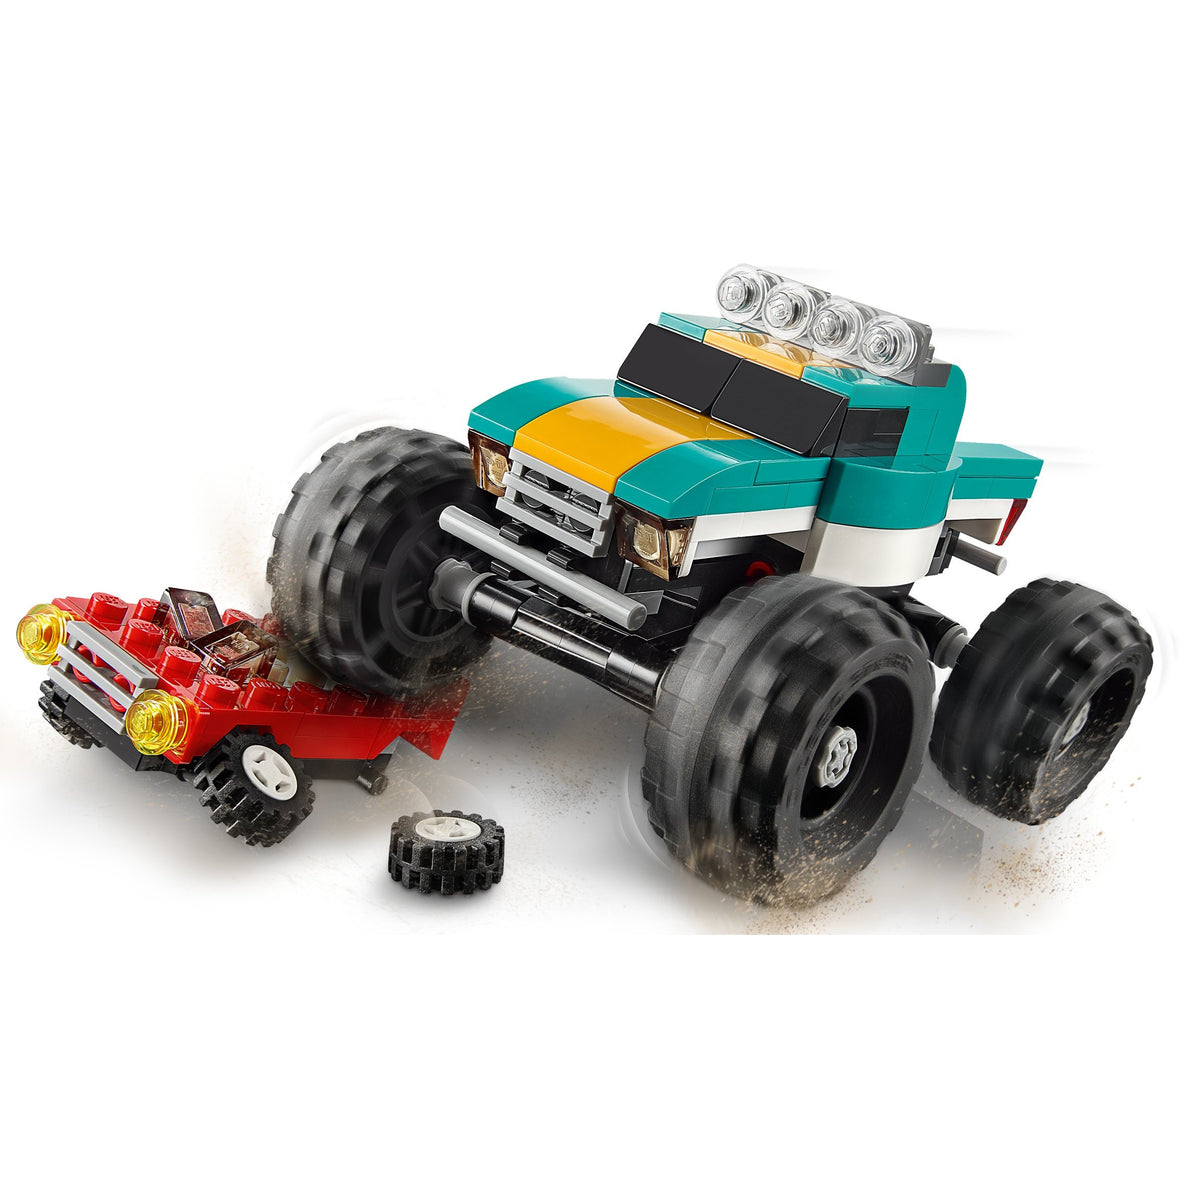 LEGO Creator Monster Truck 31101 canada ontario 3 in 1 3in1 dragster muscle car